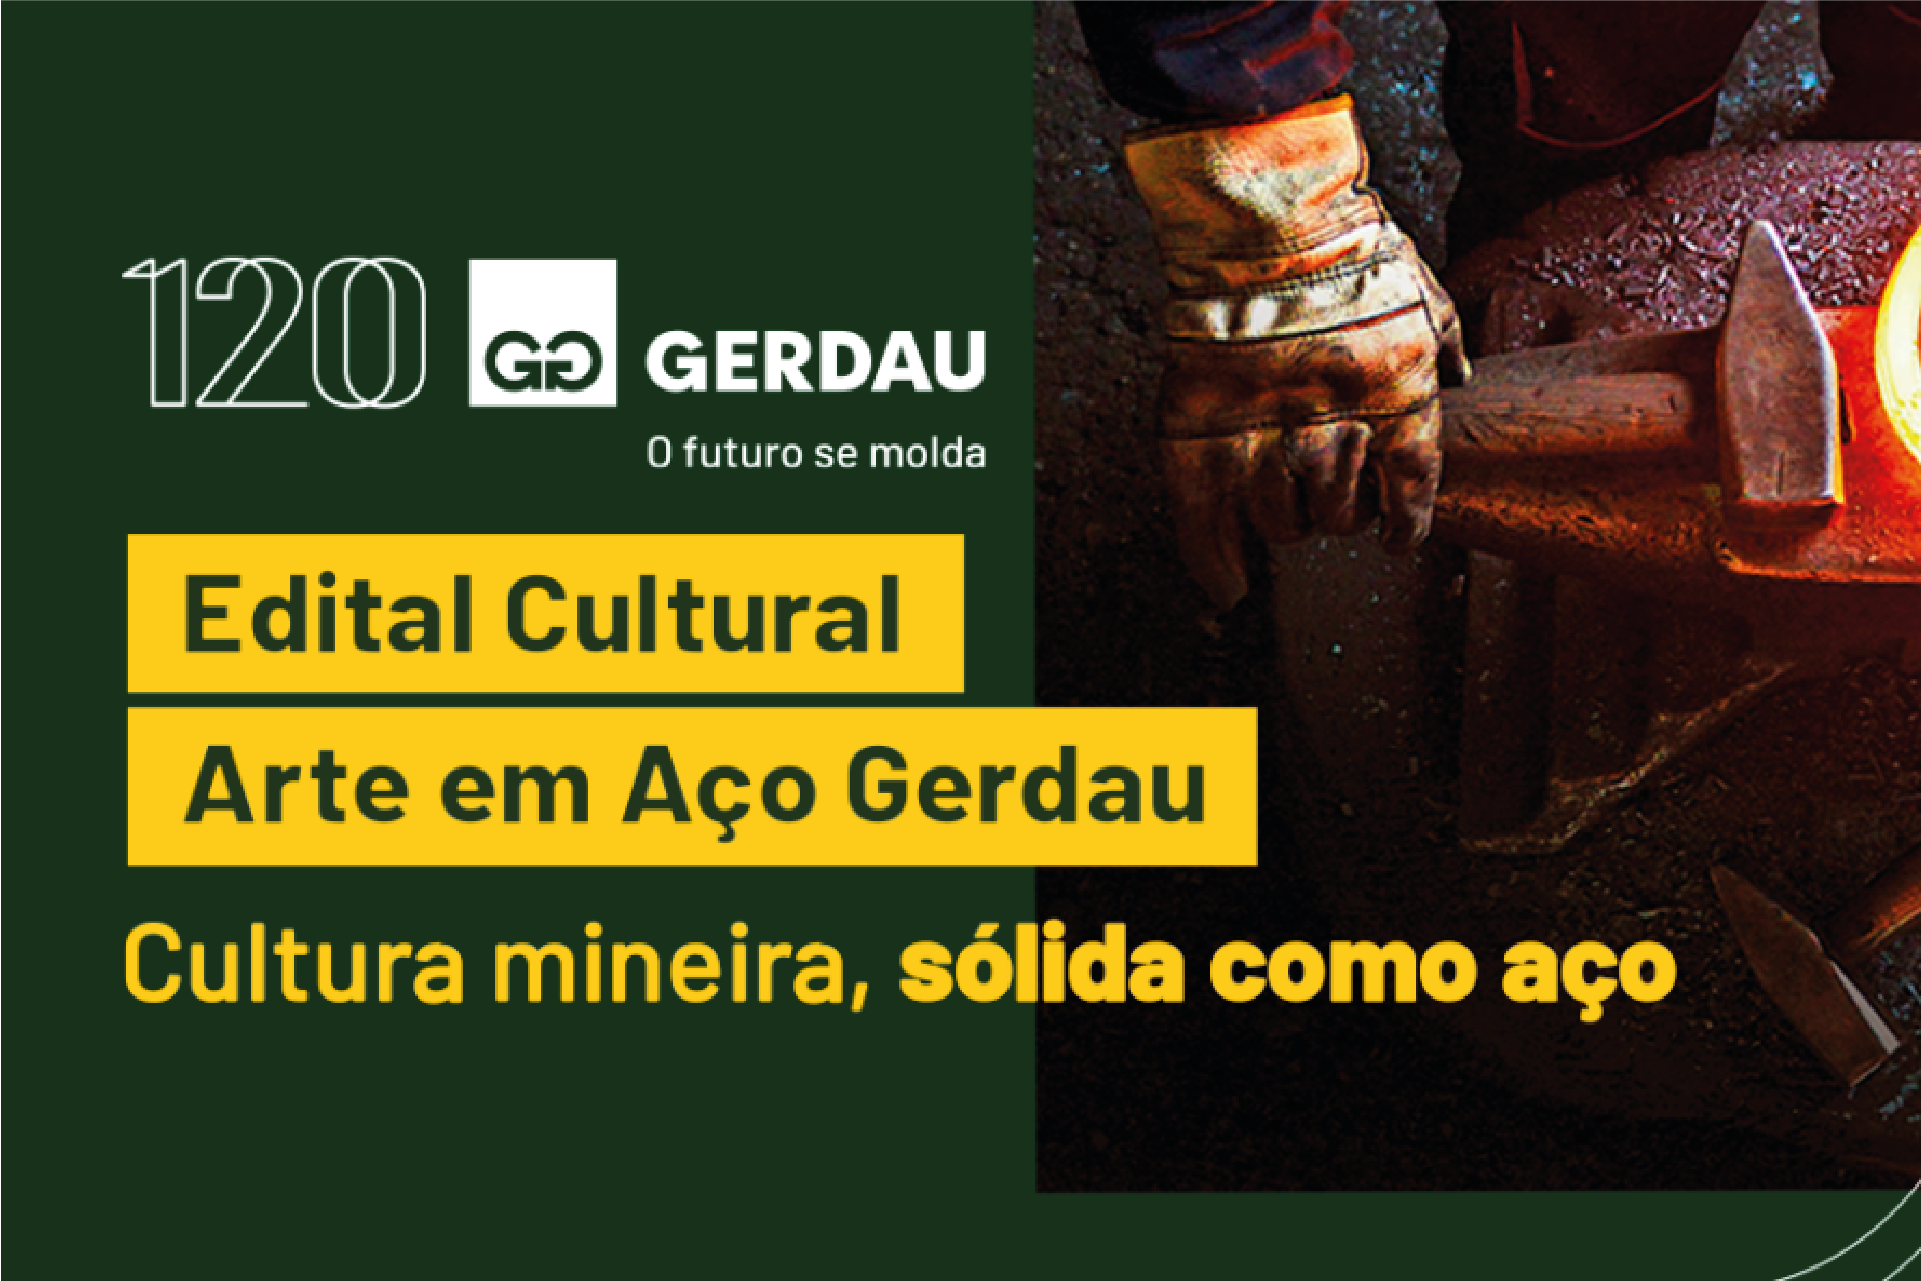 GERDAU OPENS A PUBLIC NOTICE TO INCENTIVE MINING CULTURE AND INVITES ARTISTS TO CREATE ART USING STEEL